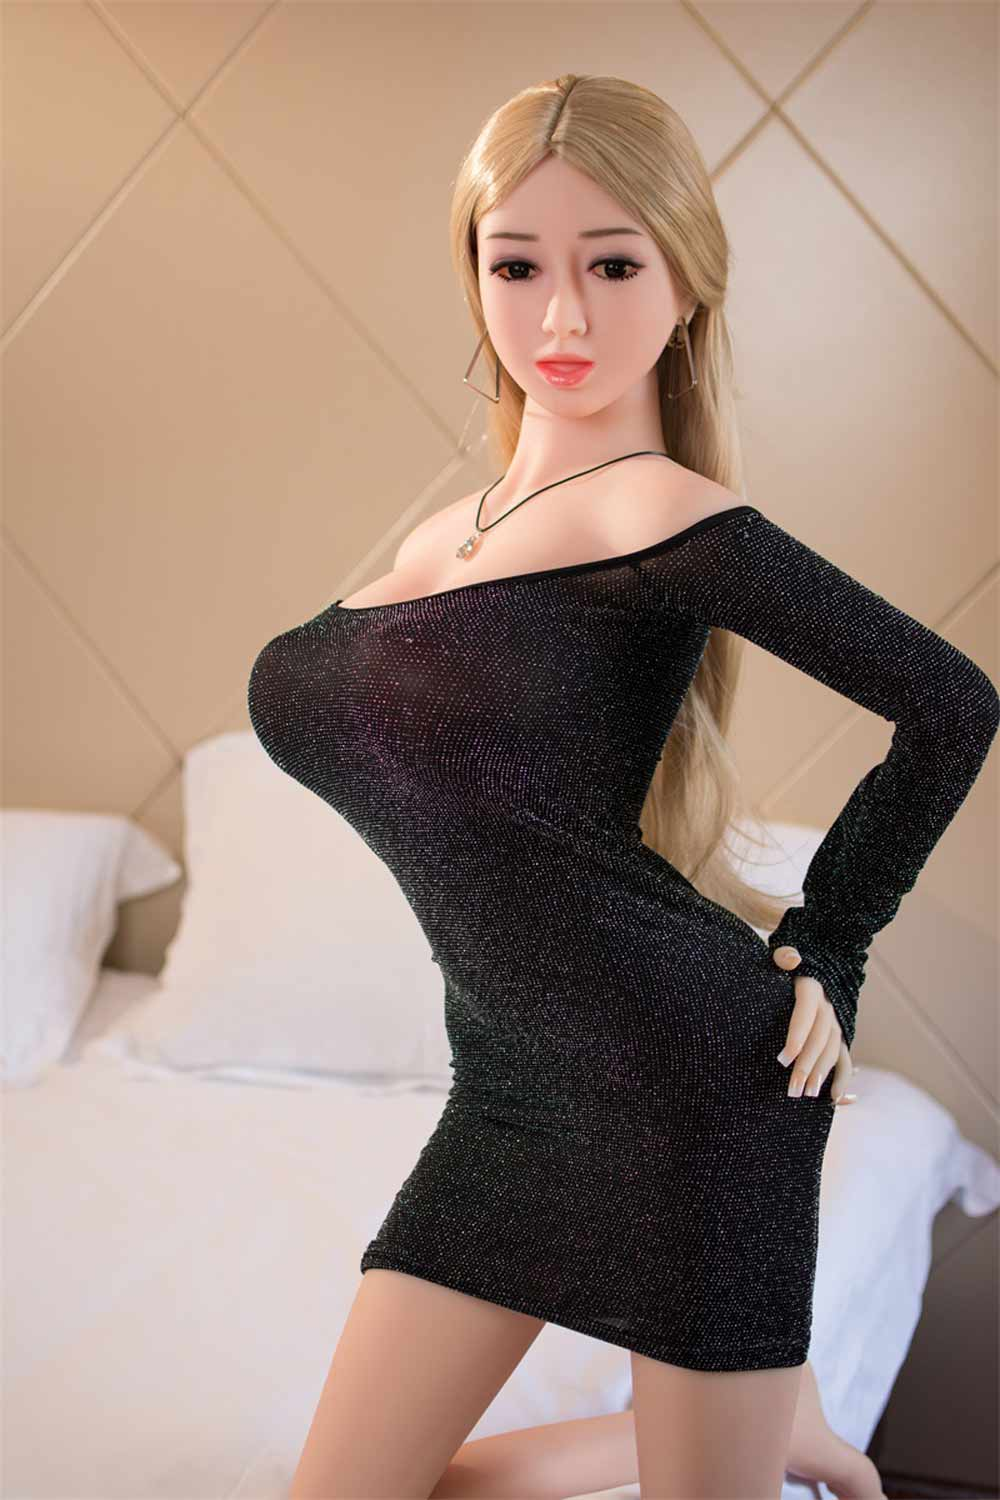 Sex doll with hands touching ass